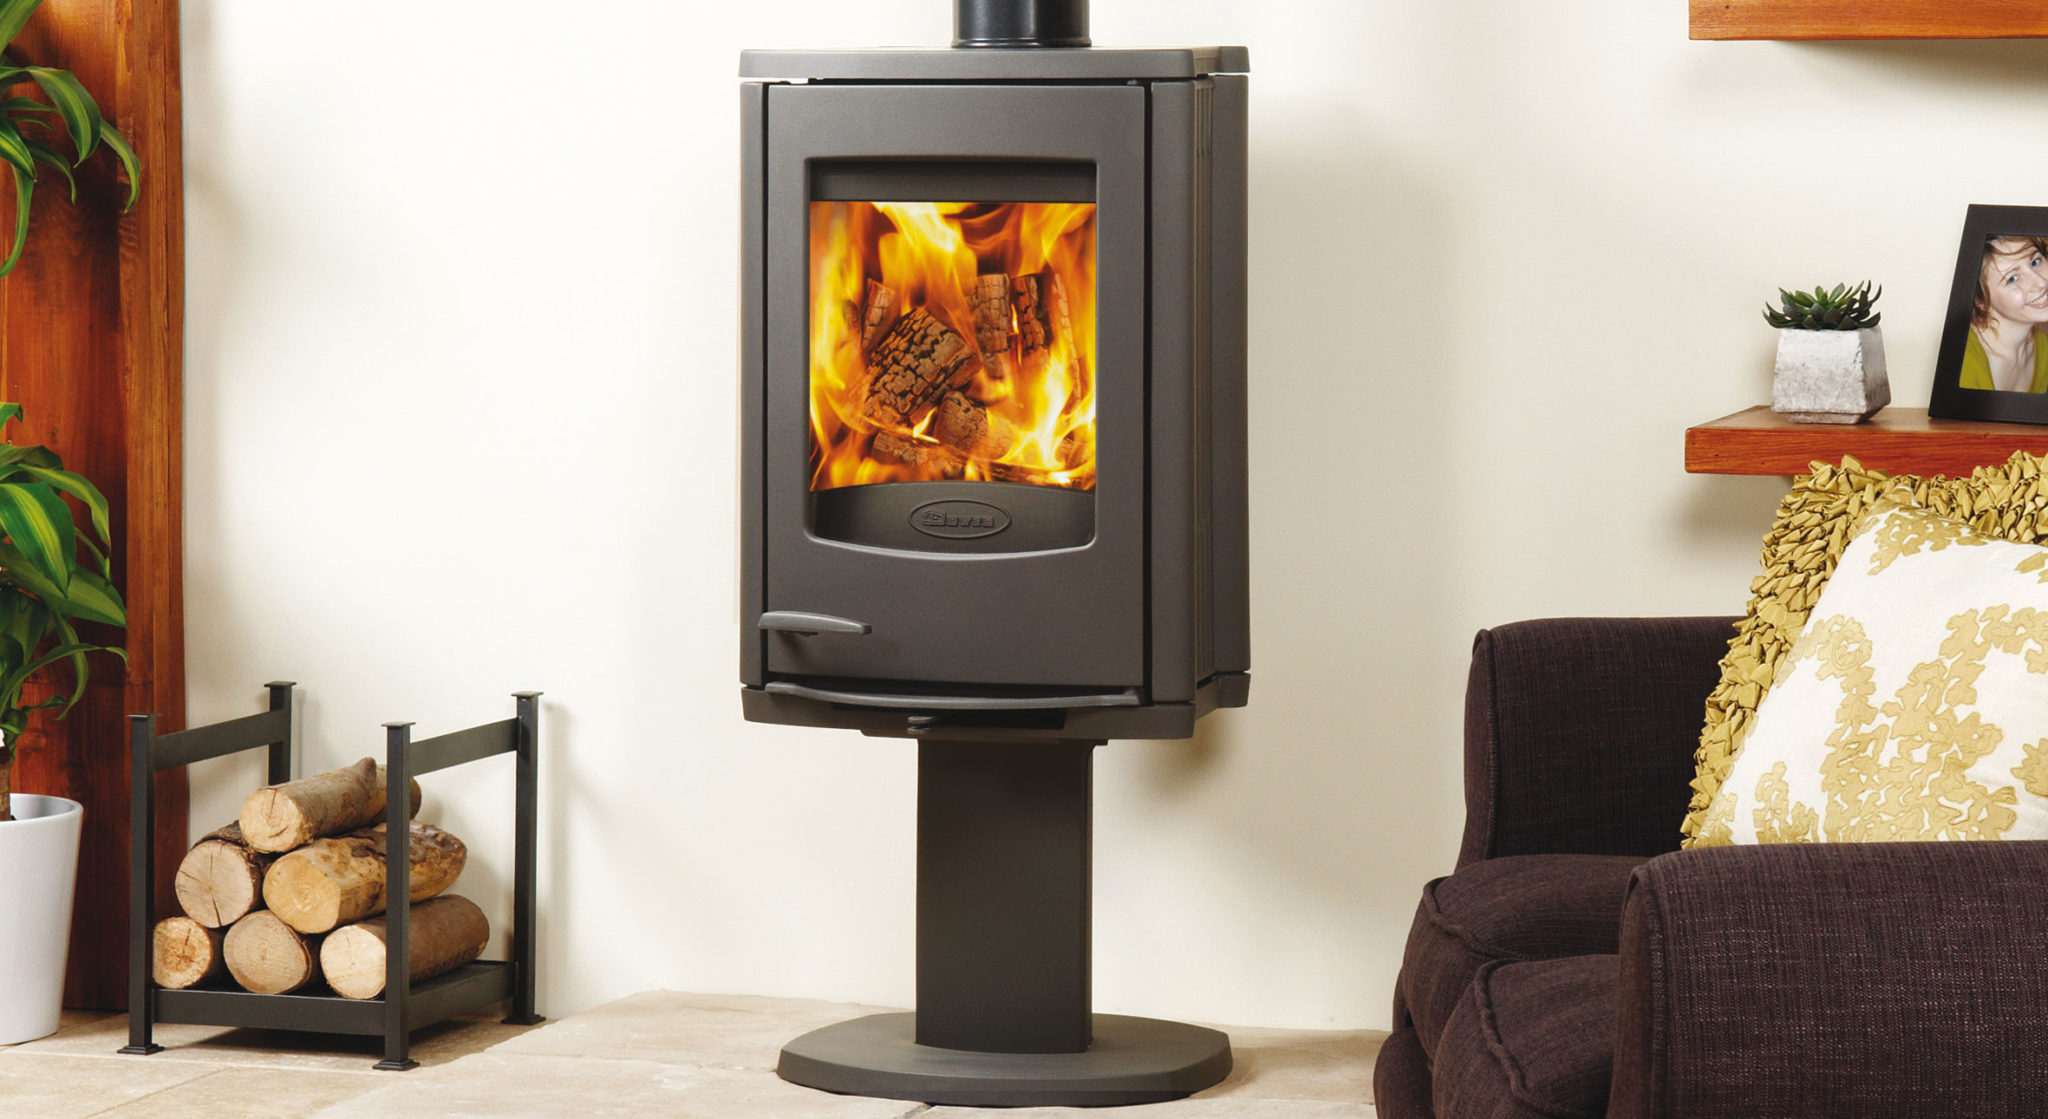 Attractive Accessories for your Dovre Stove